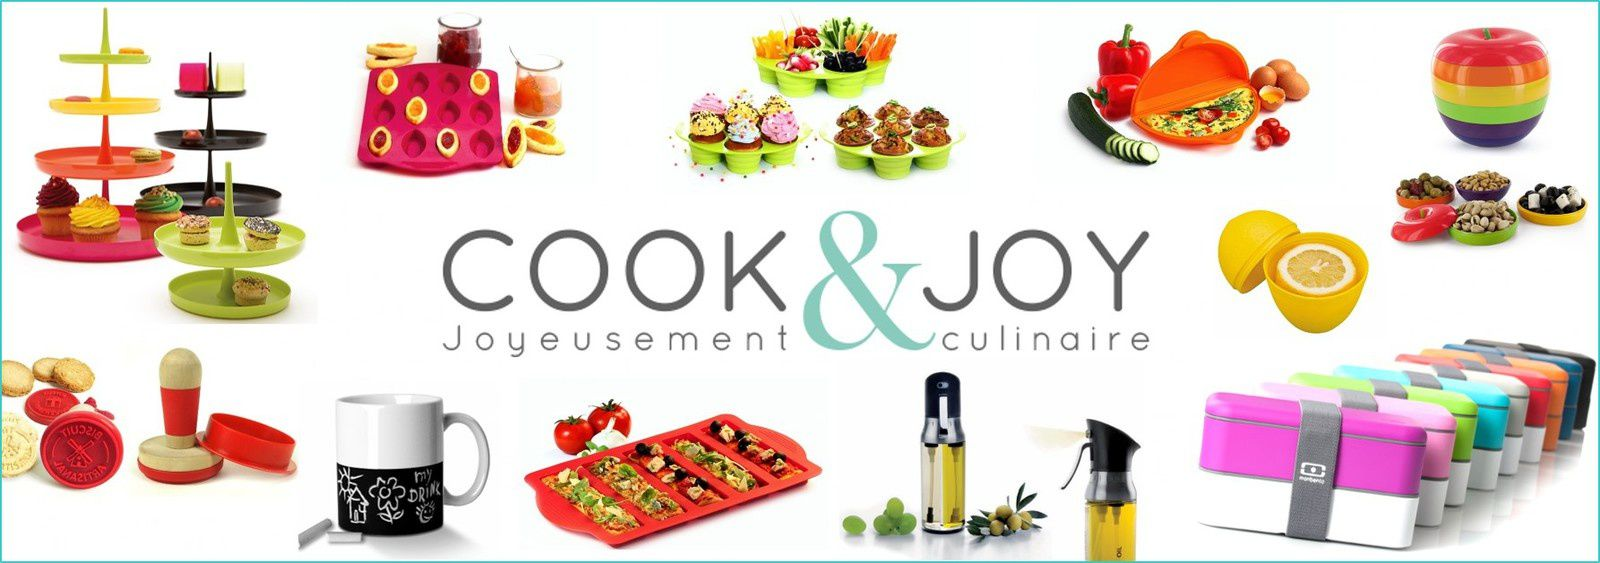 http://www.cookandjoy.fr/